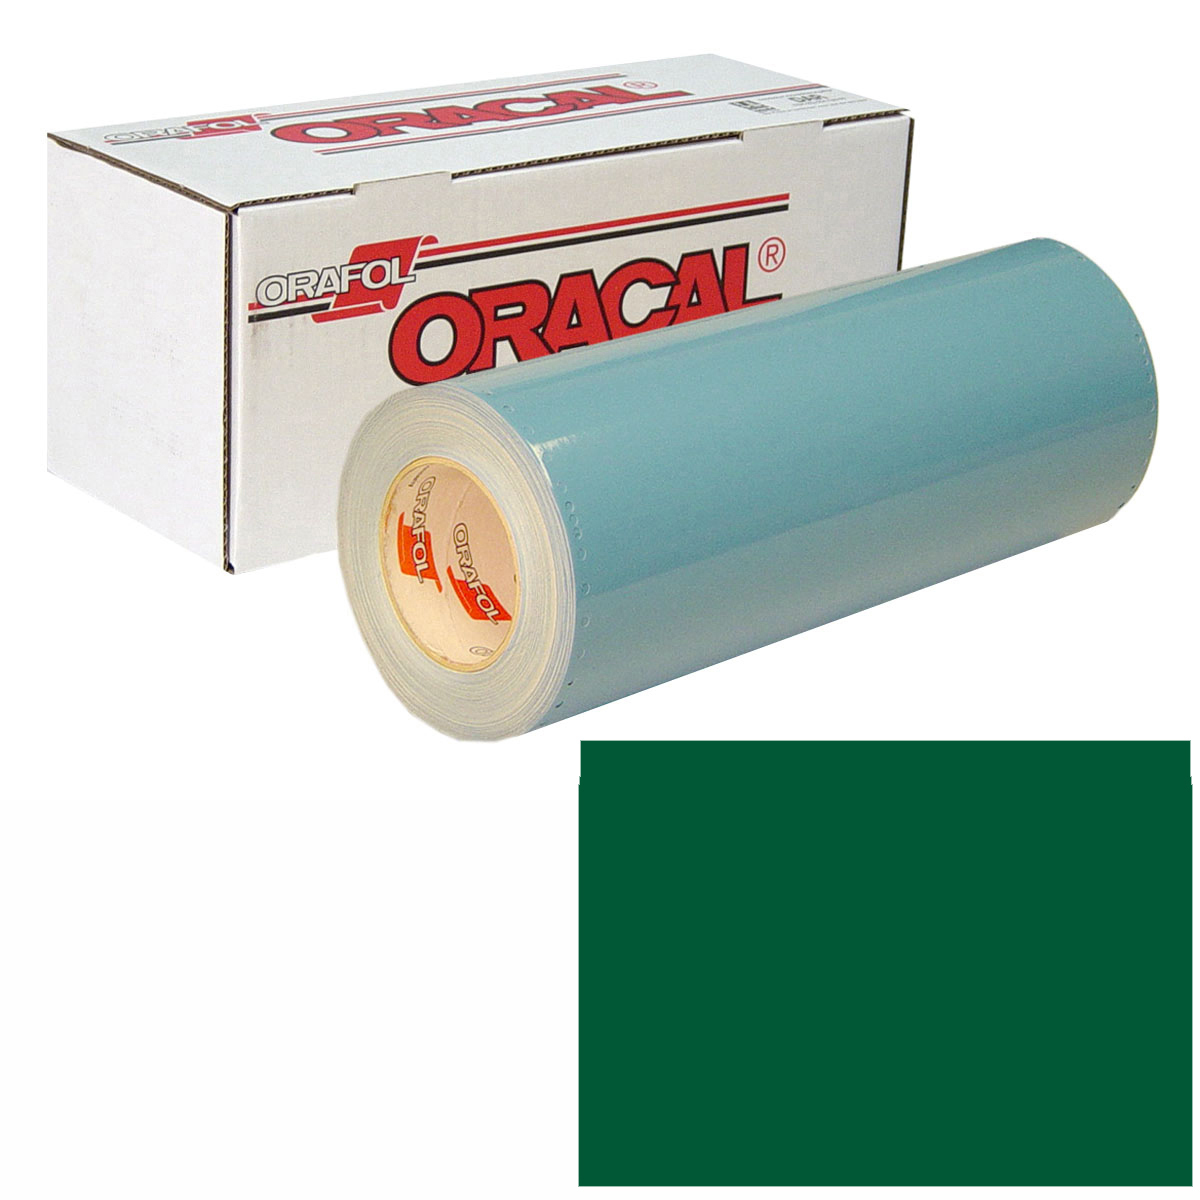 ORACAL 751 Unp 48In X 50Yd 060 Dark Green